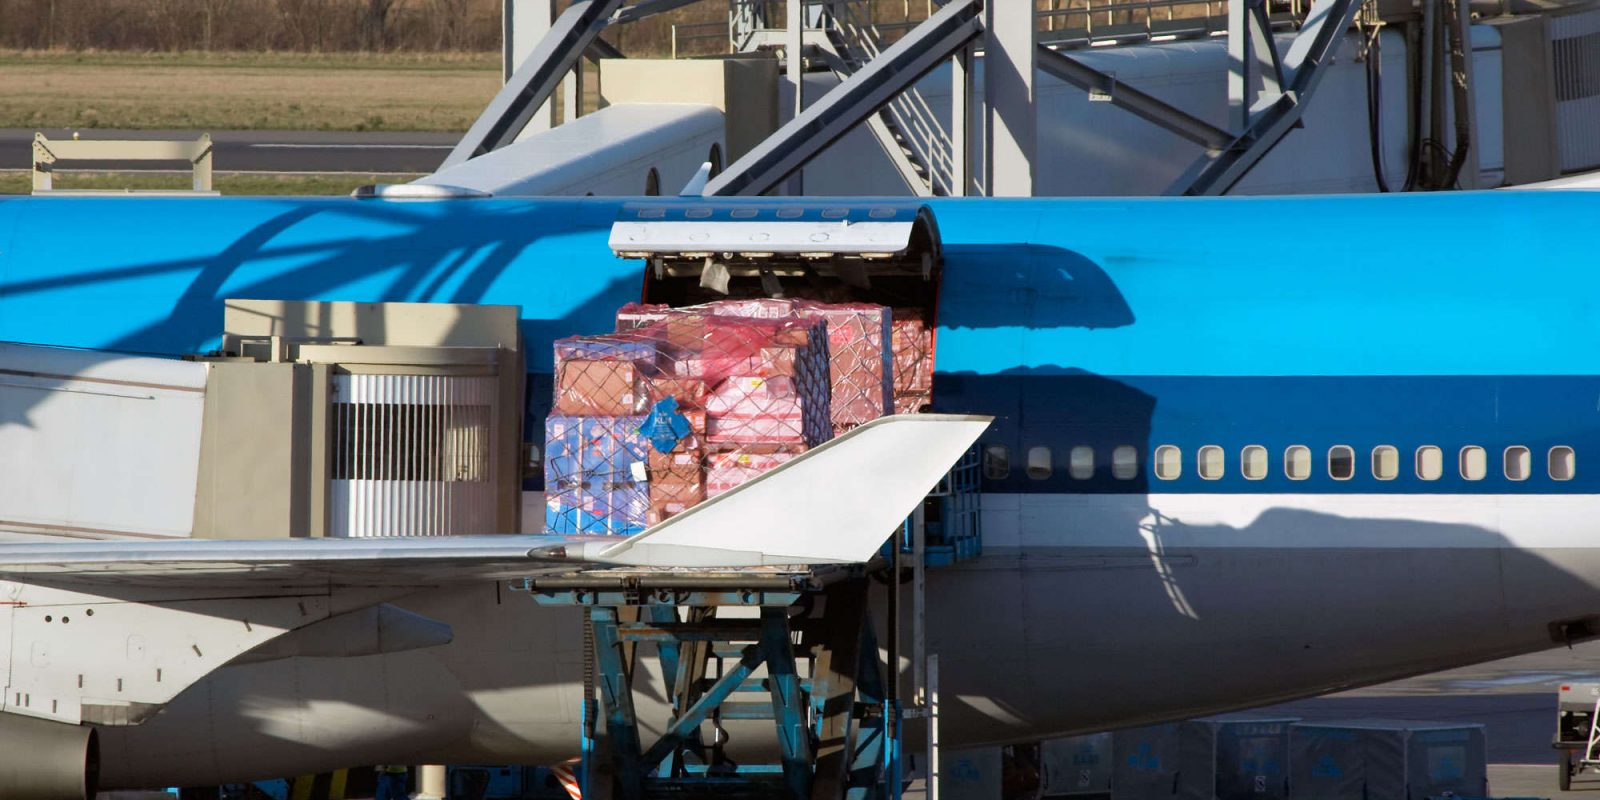 an aircraft unloading cargo at the airport